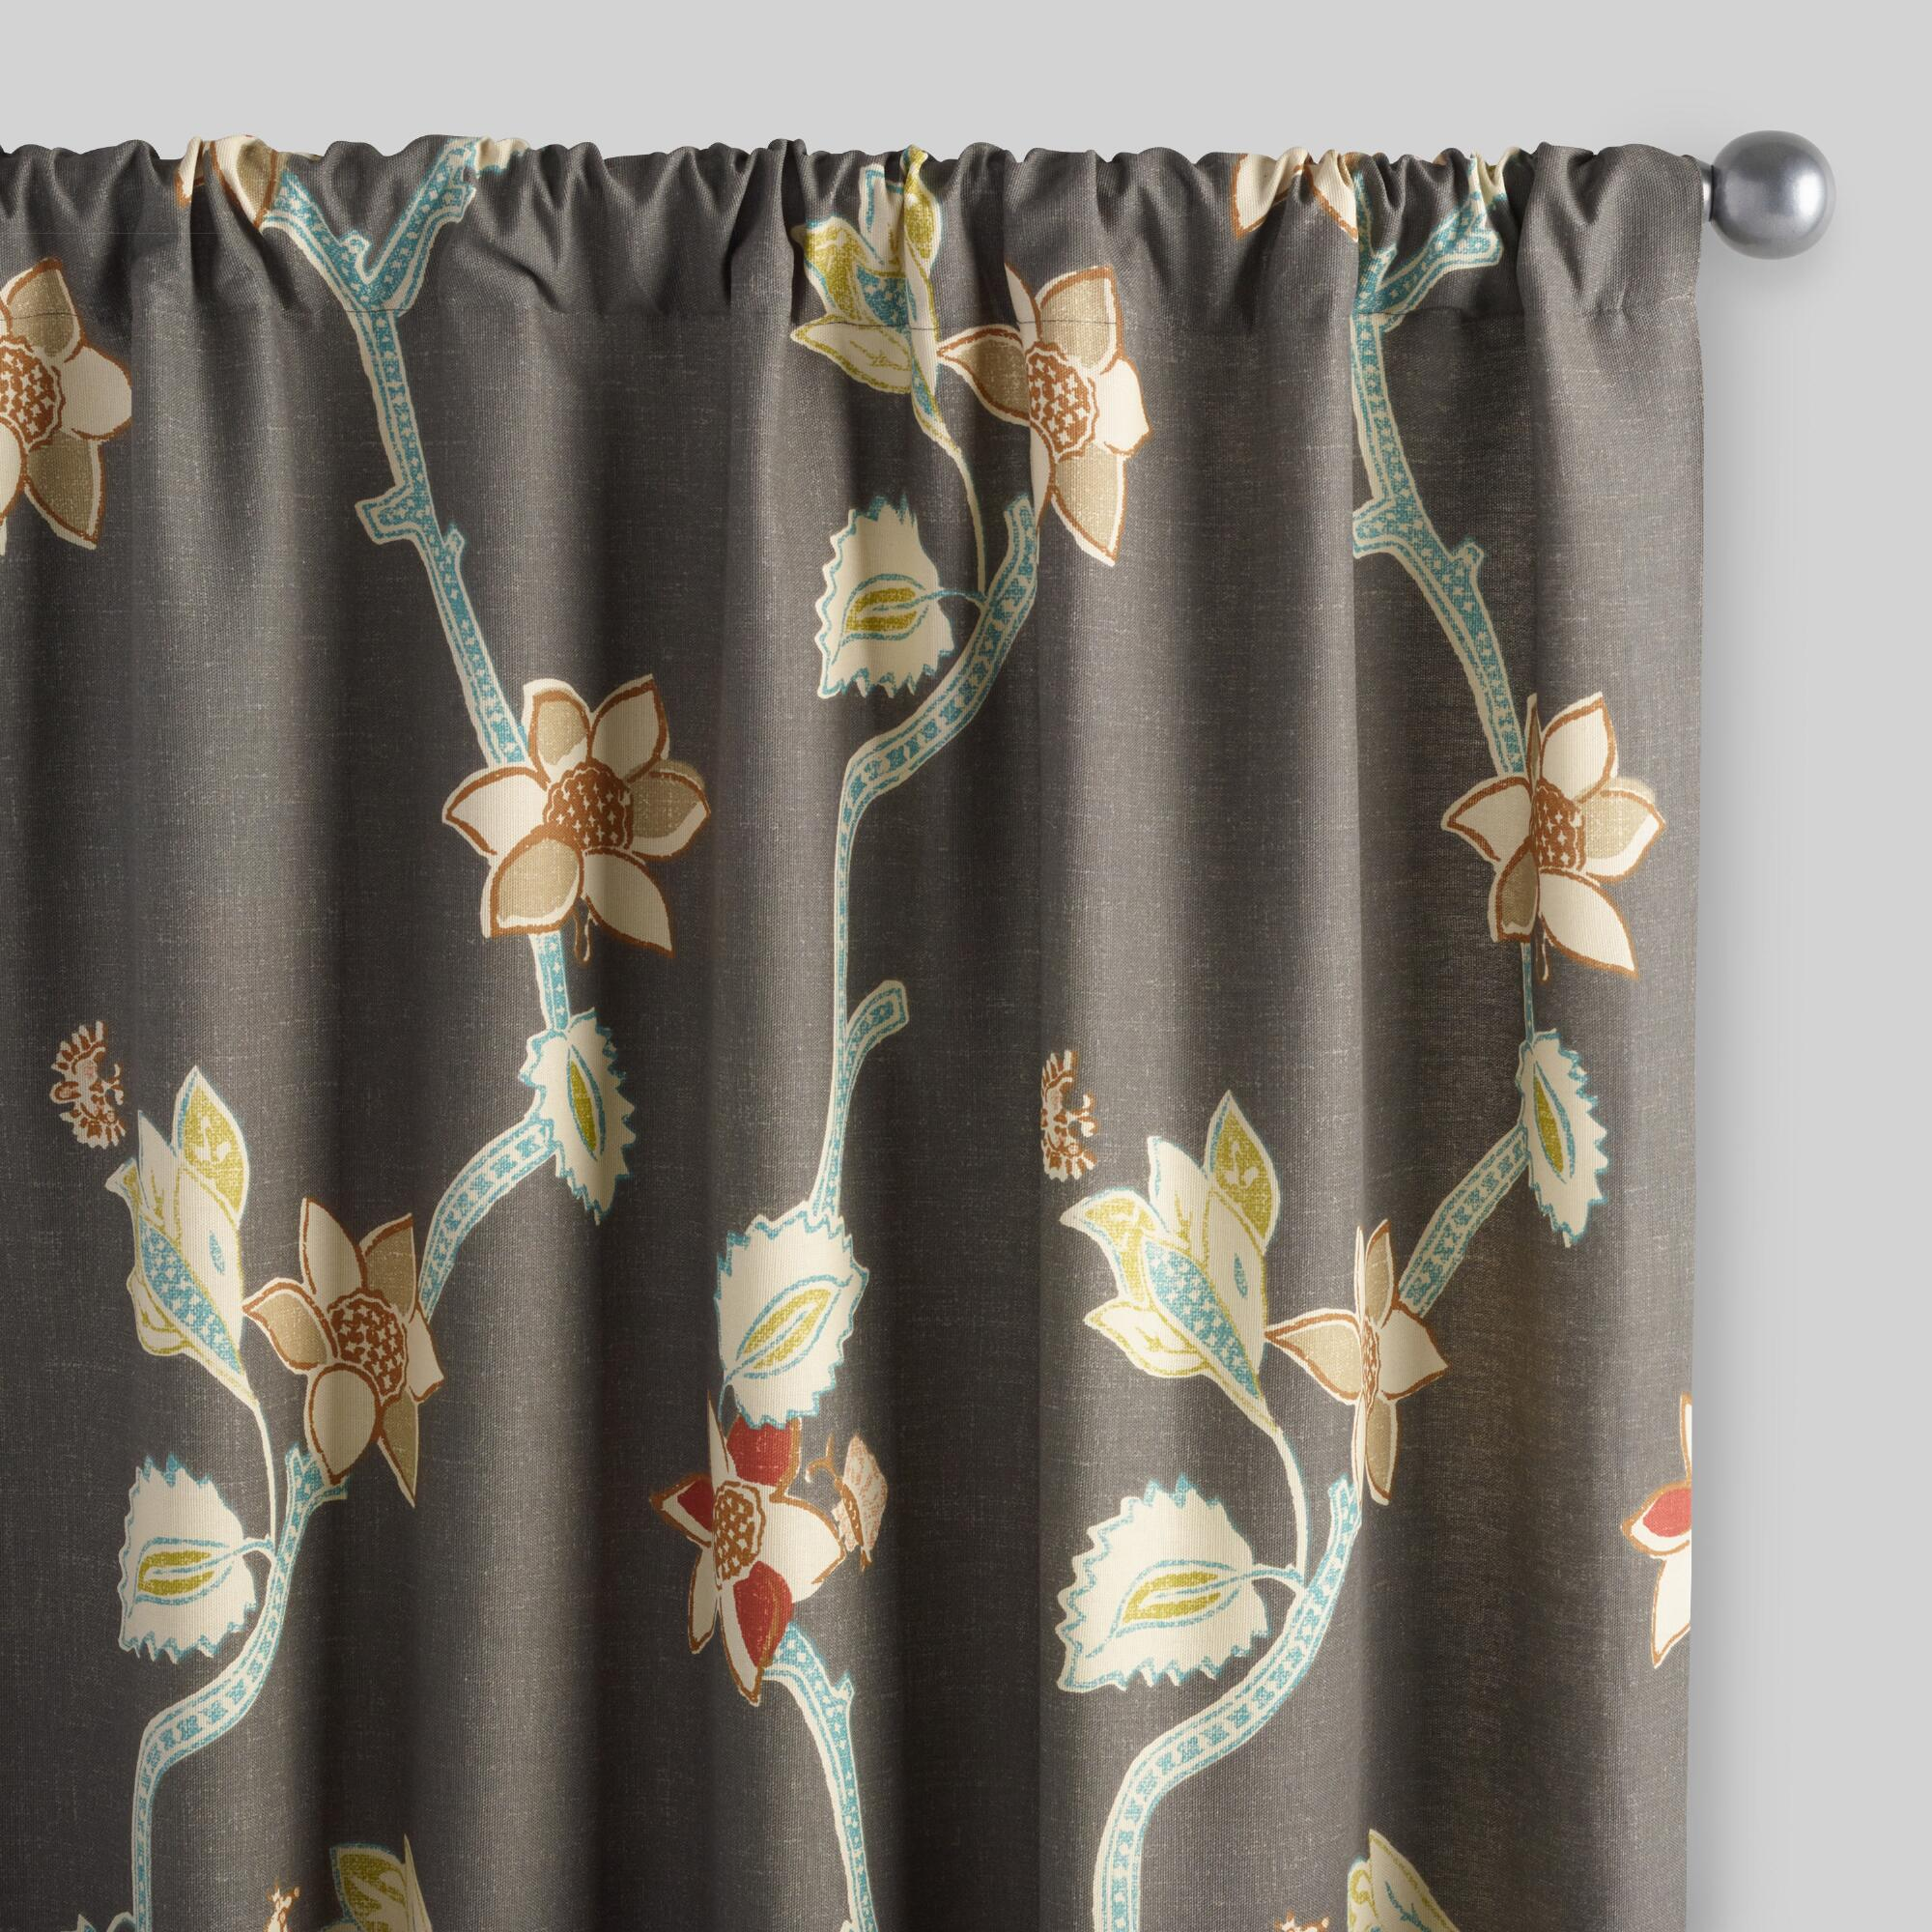 World Bazar: Bird Of Paradise Pakshi Curtains, Set Of 2